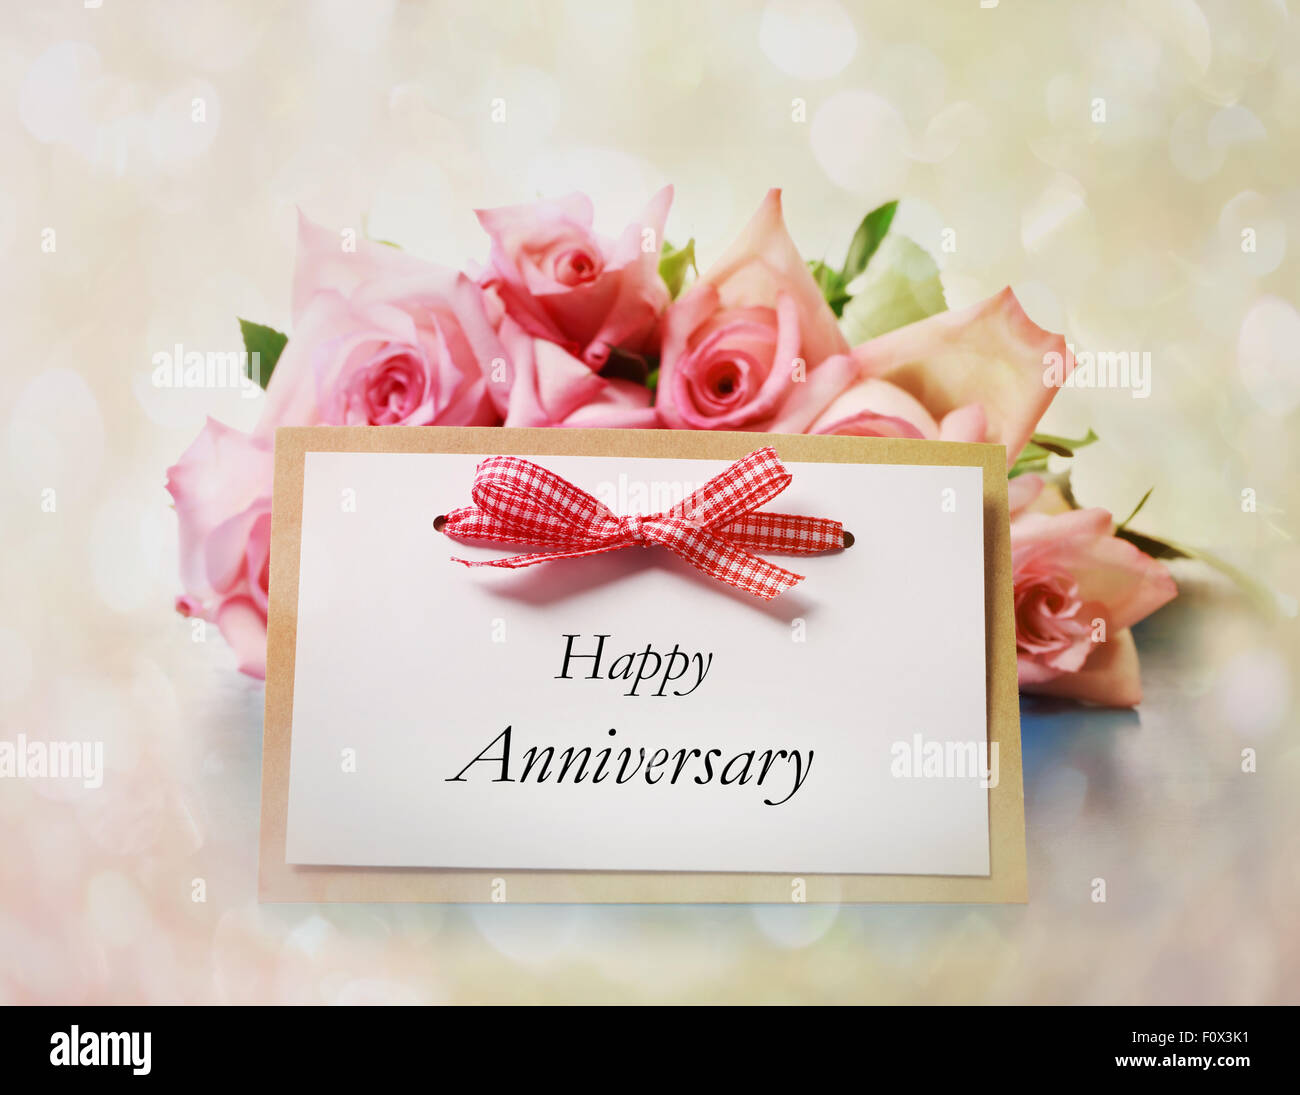 Happy Anniversary Greeting Card With Roses Stock Photo